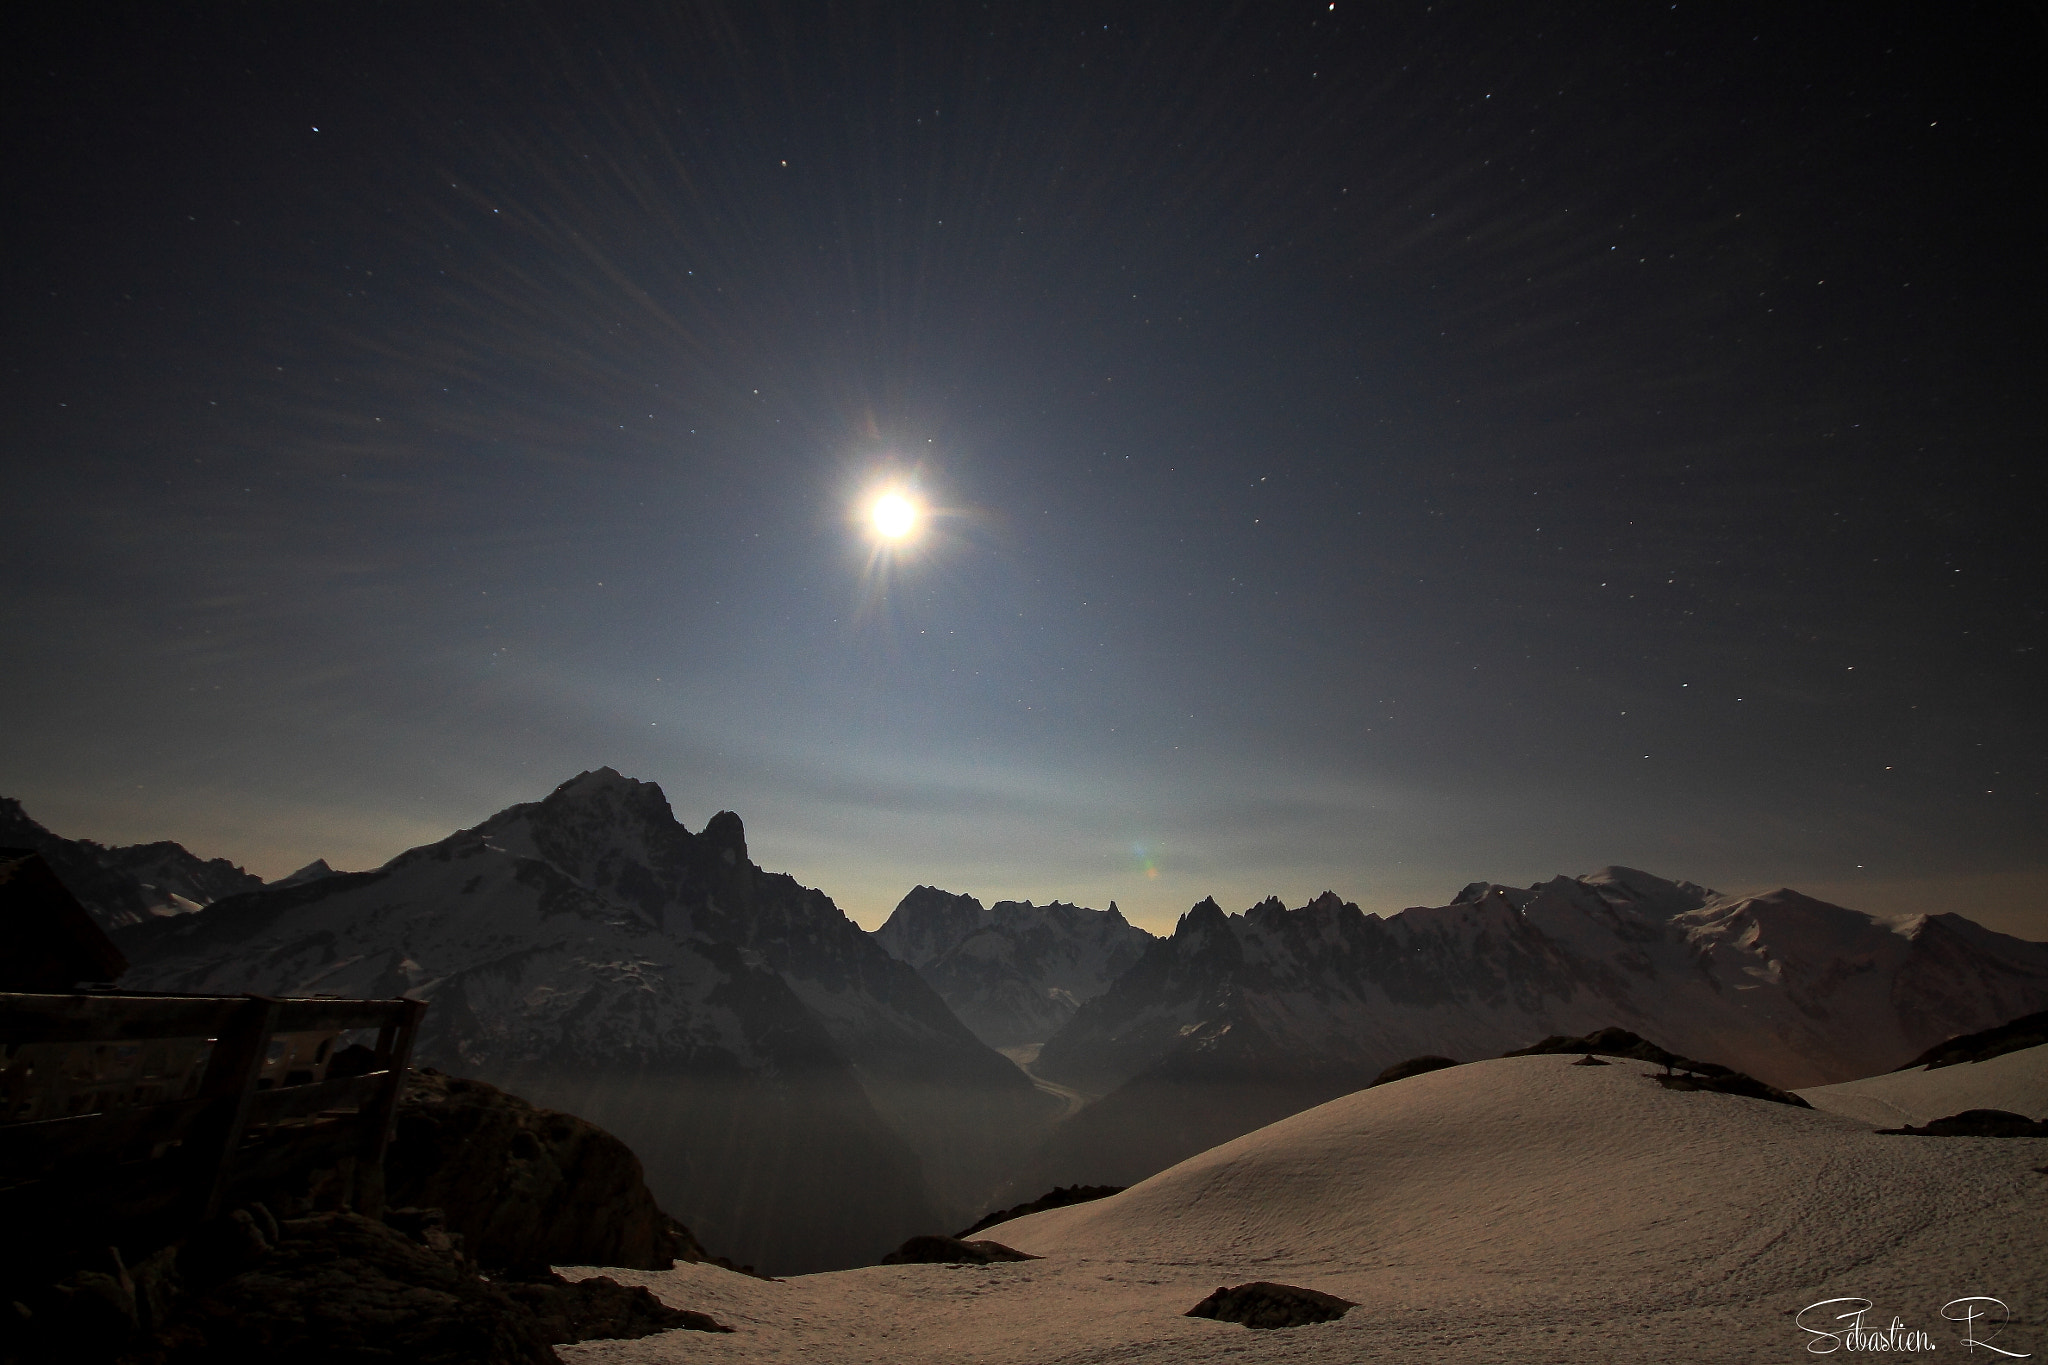 Photograph Chamonix needles moonlight by Sébastien Rodrigues on 500px